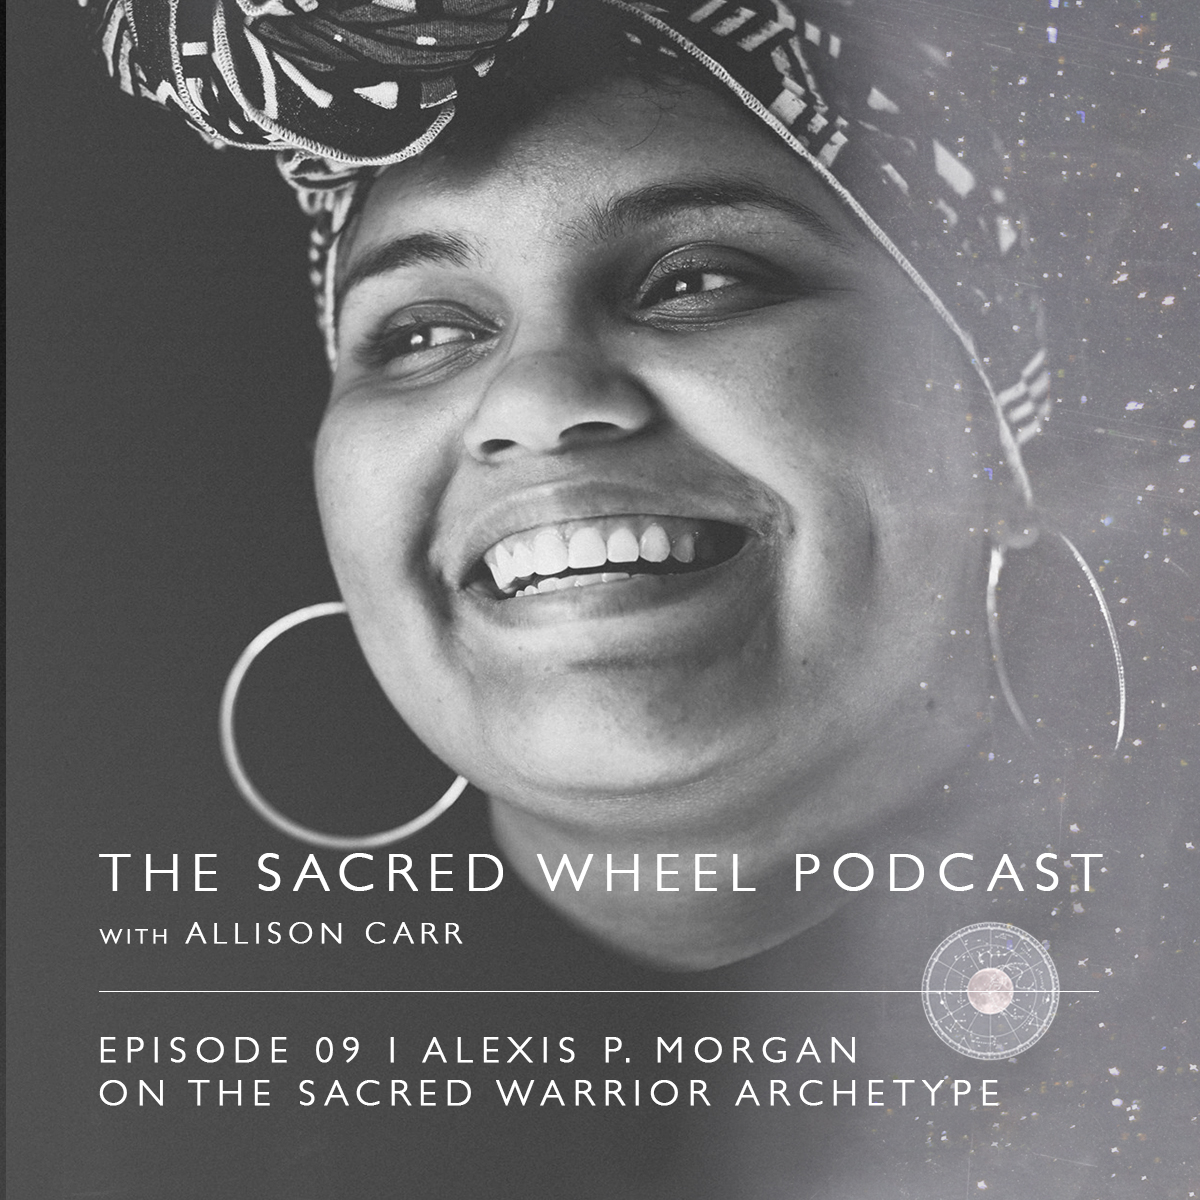 Alexis P. Morgan: On the Sacred Warrior Archetype